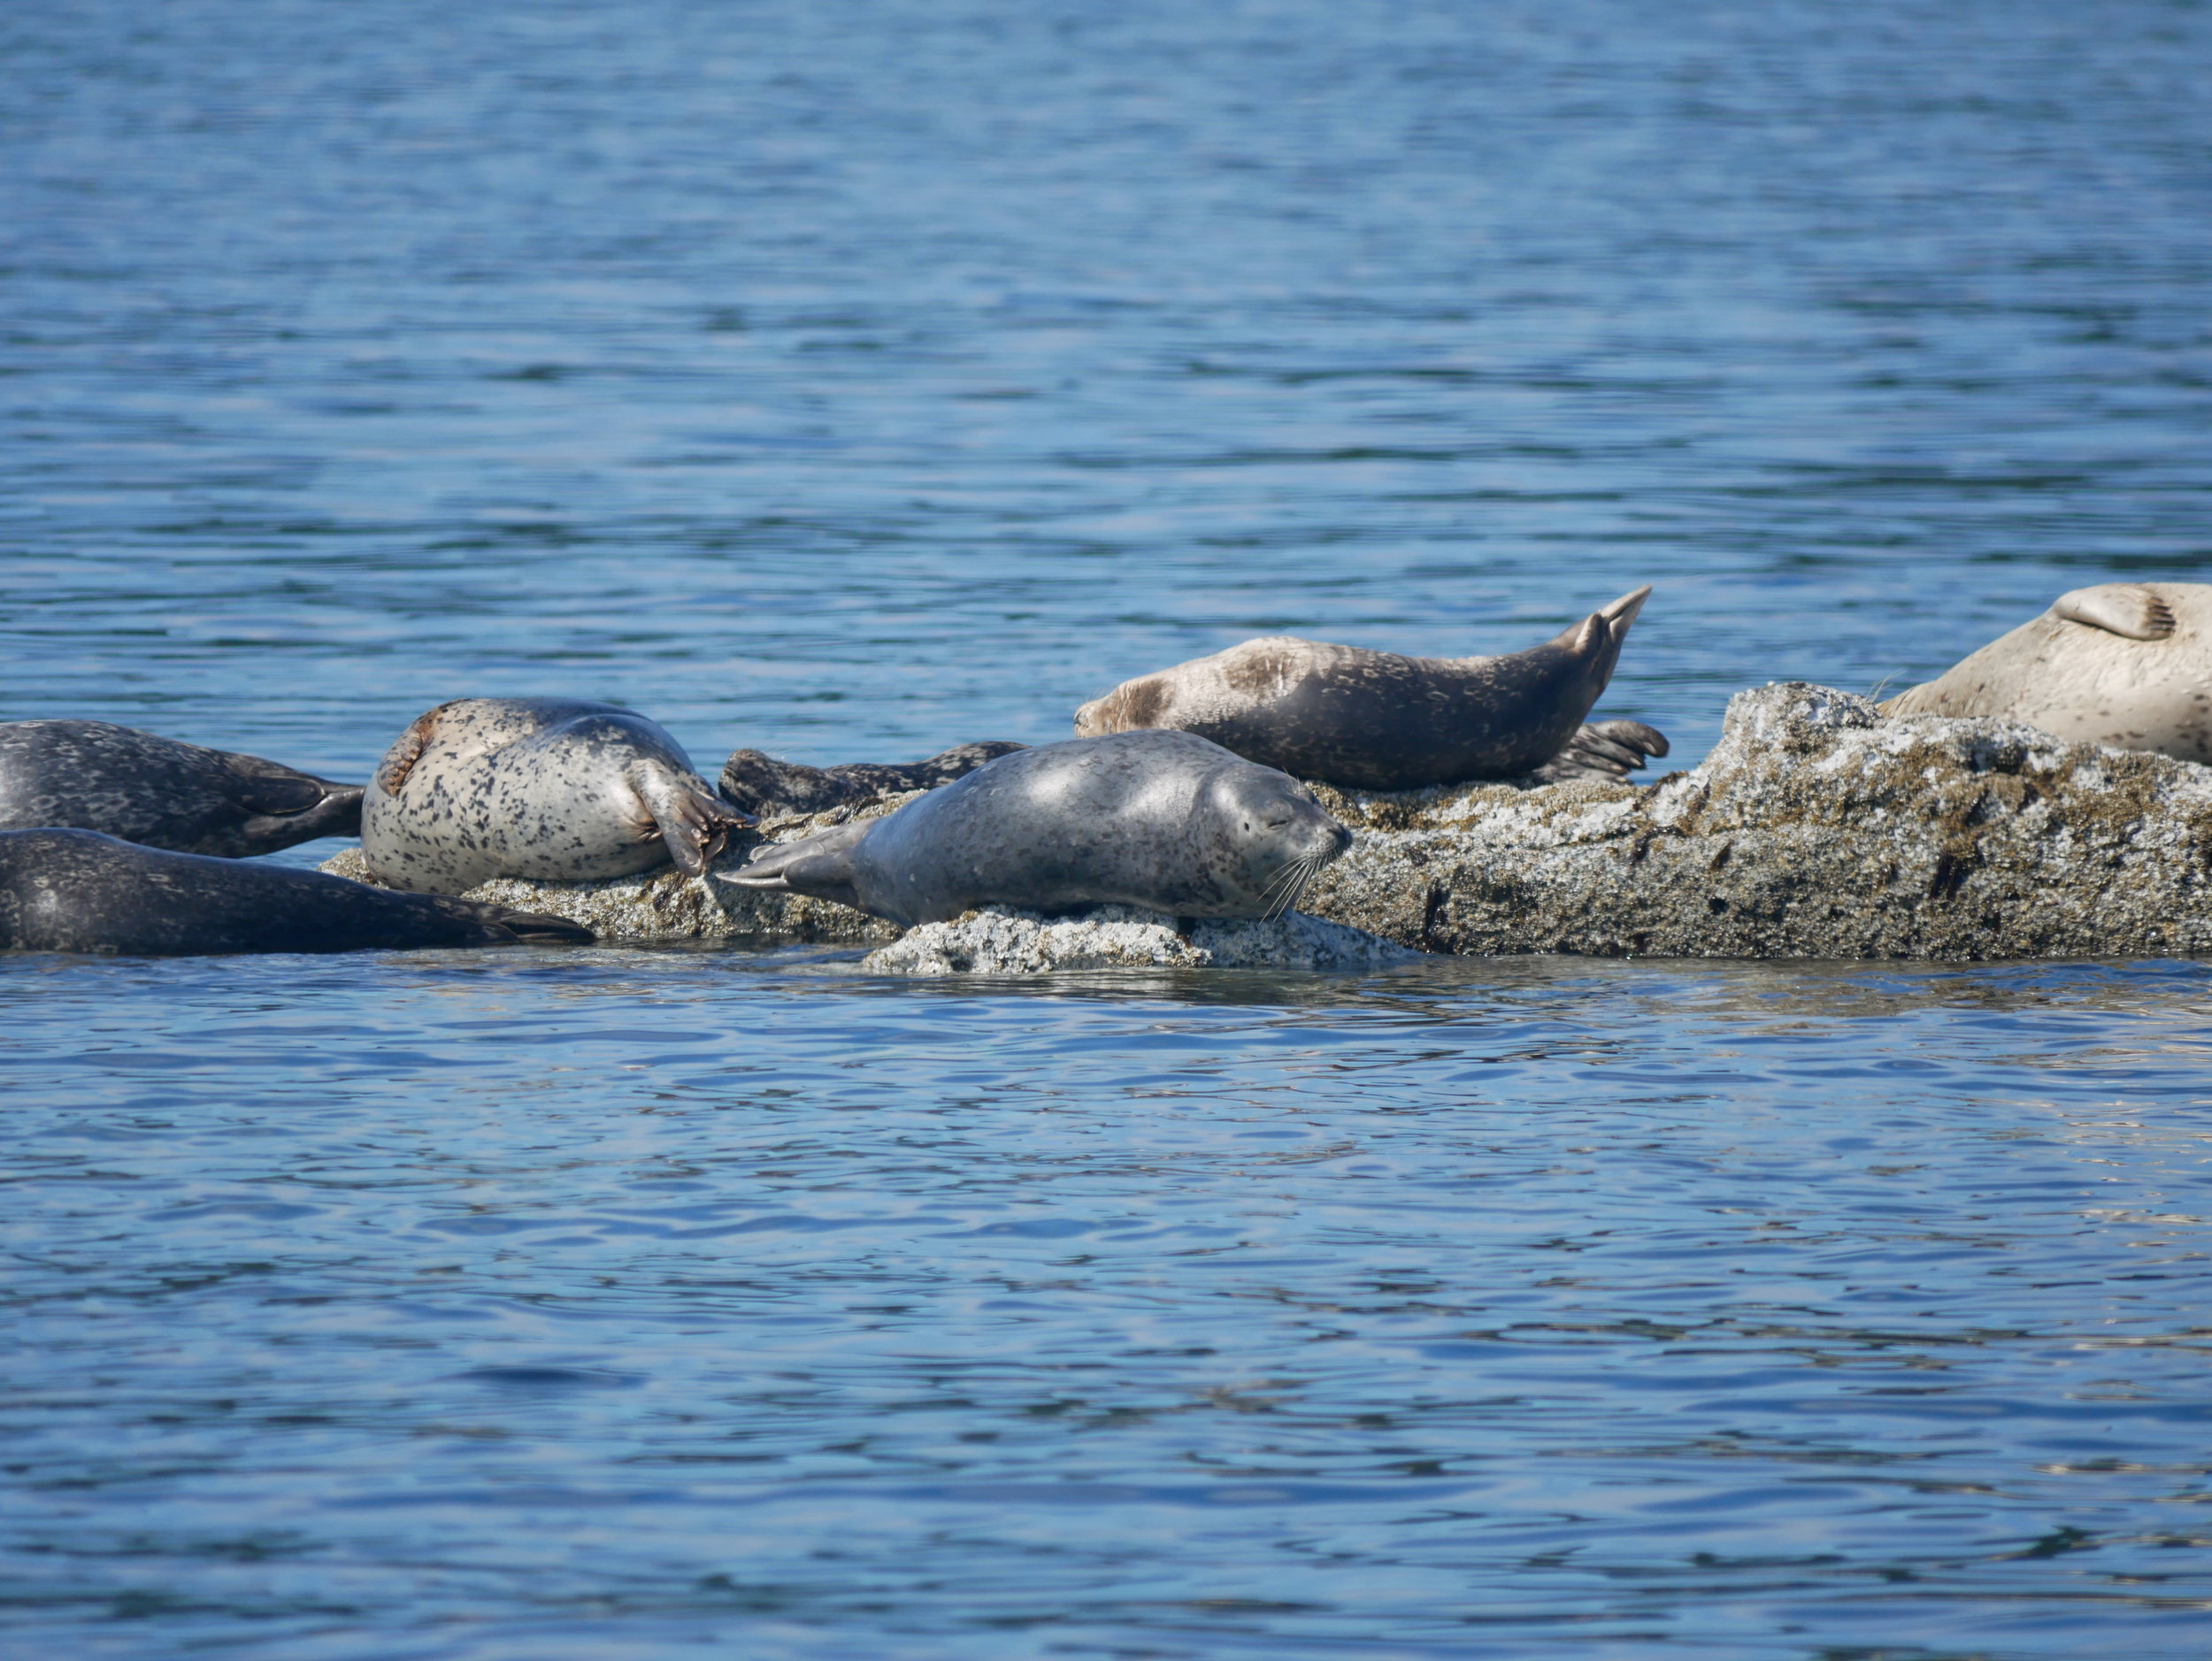 Harbour seals performing a balancing act on their rocky haulout! Photo by Alanna Vivani